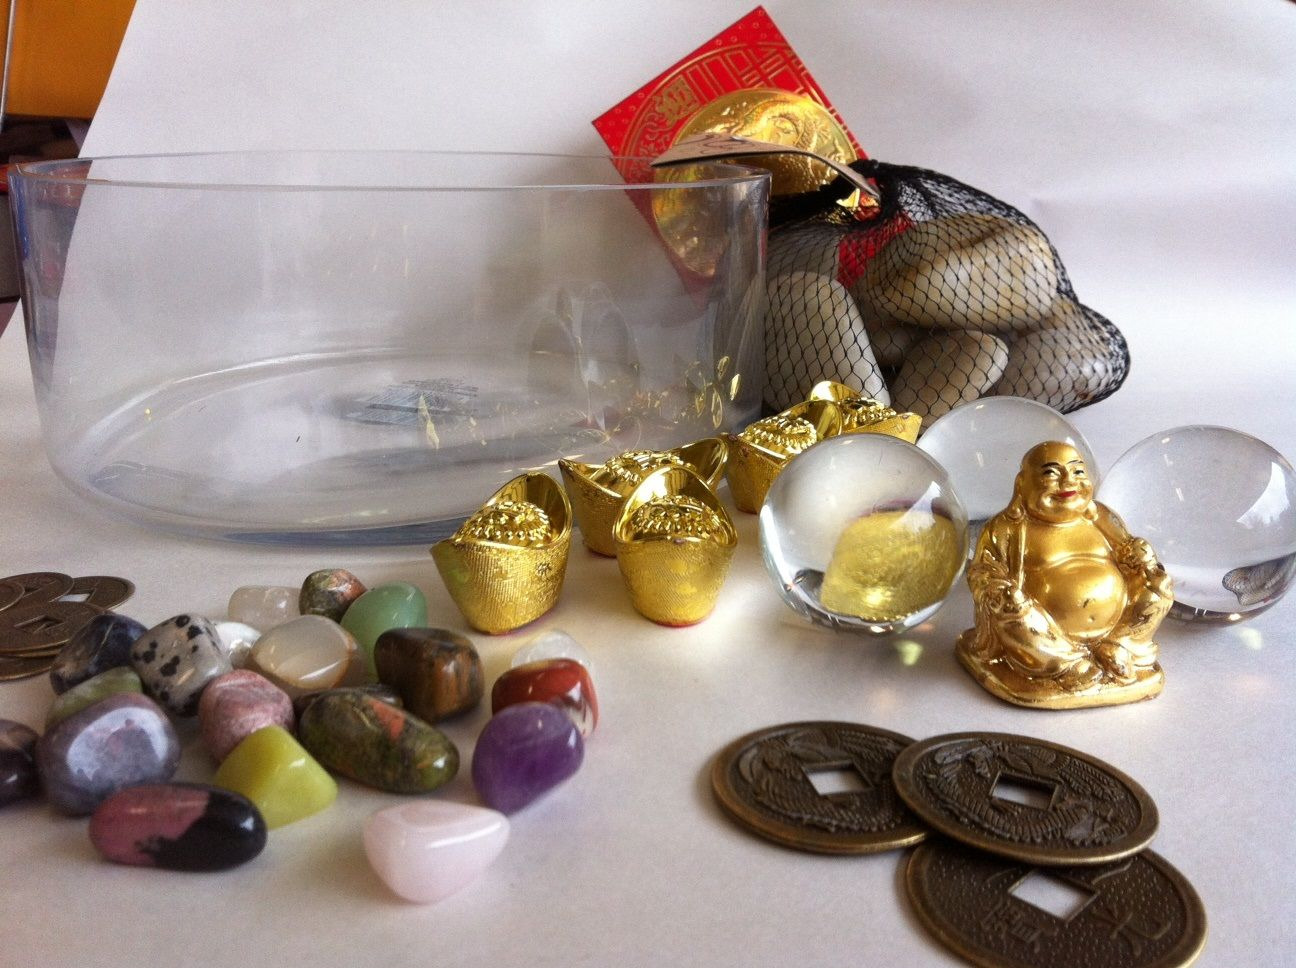 Feng shui wealth bowl feng shui pinterest feng shui wealth a feng shui wealth bowl is different than a wealth vase its designed to be displayed brimming with auspicious ingredients tips to build your own wealth reviewsmspy